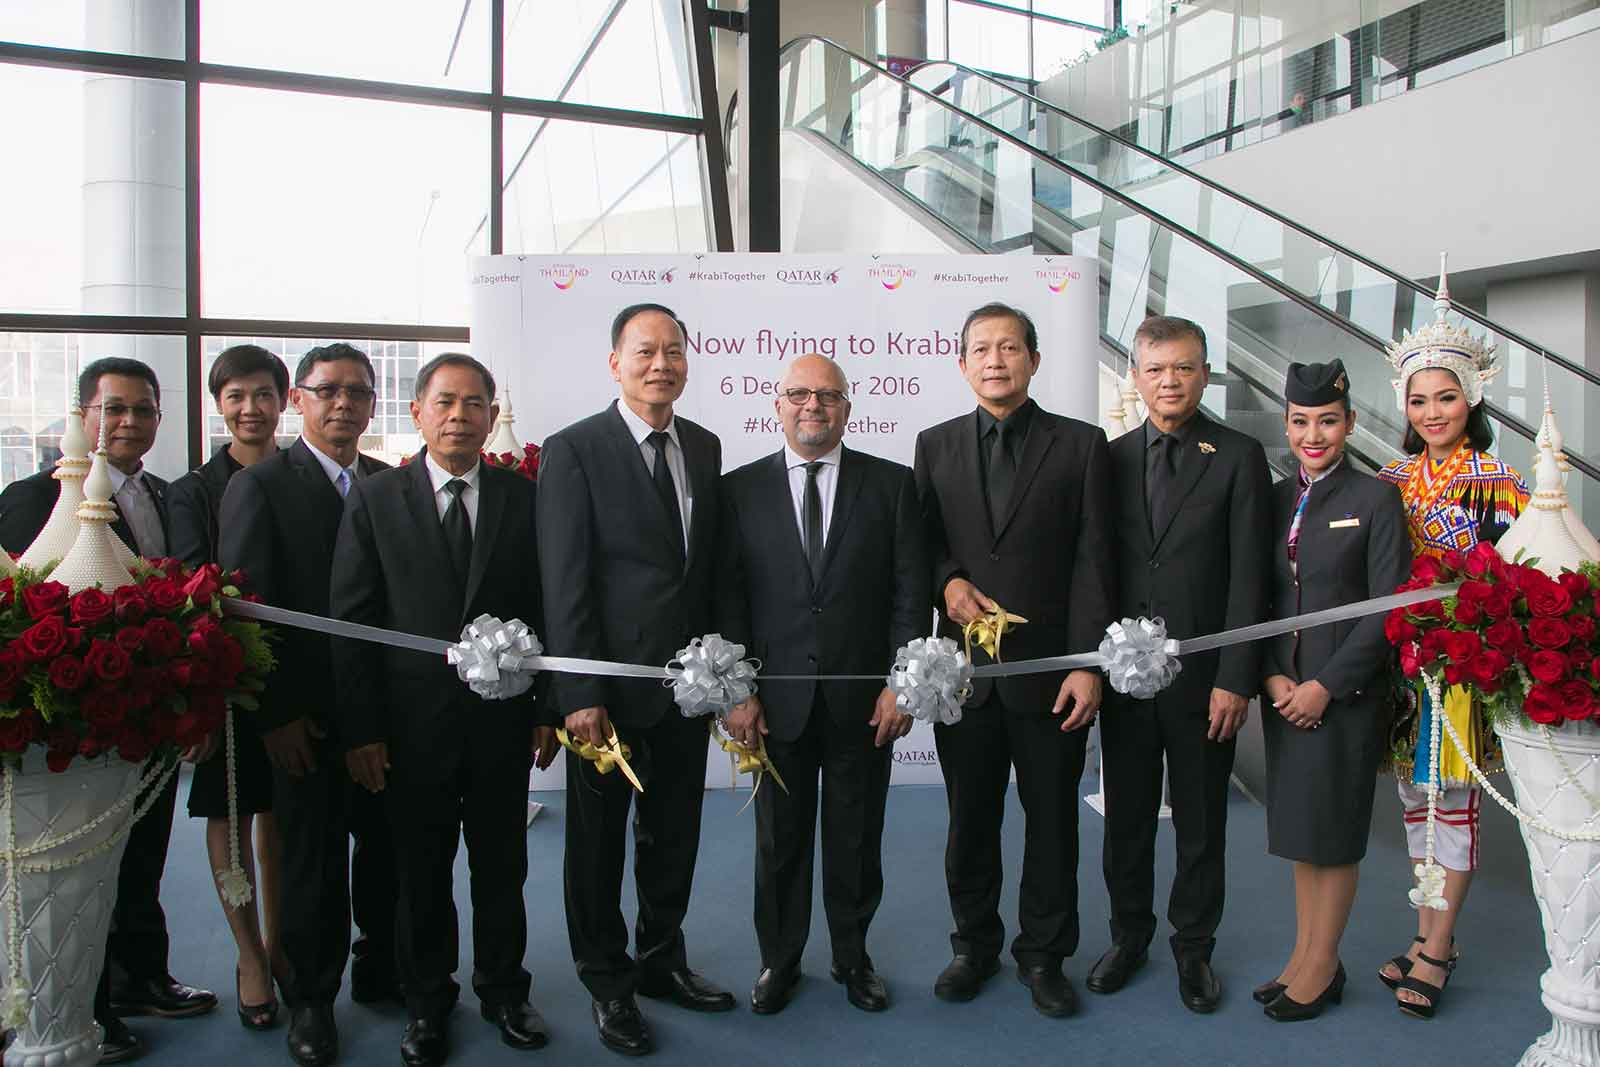 Senior officials from Qatar Airways, Krabi provincial government, Krabi International Airport and Tourism Authority of Thailand